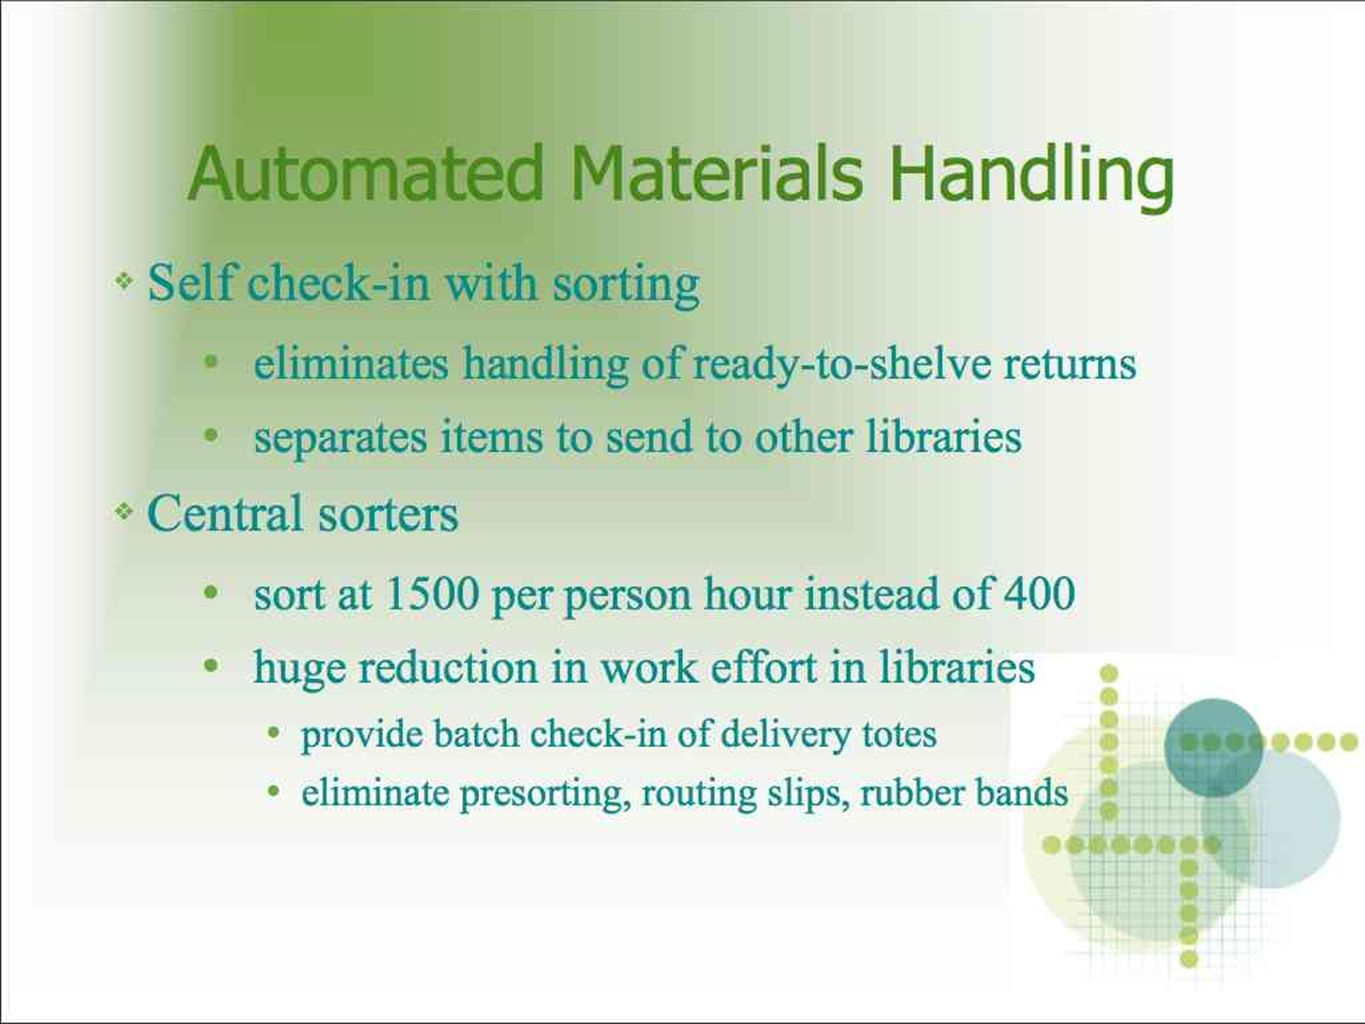 Automated Materials Handling Self check-in with sorting eliminates handling of ready-to-shelve returns separates items to send to other libraries Central sorters sort at 1500 per person hour instead of 400 huge reduction in work effort in libraries provide batch check-in of delivery totes eliminate presorting, routing slips, rubber bands